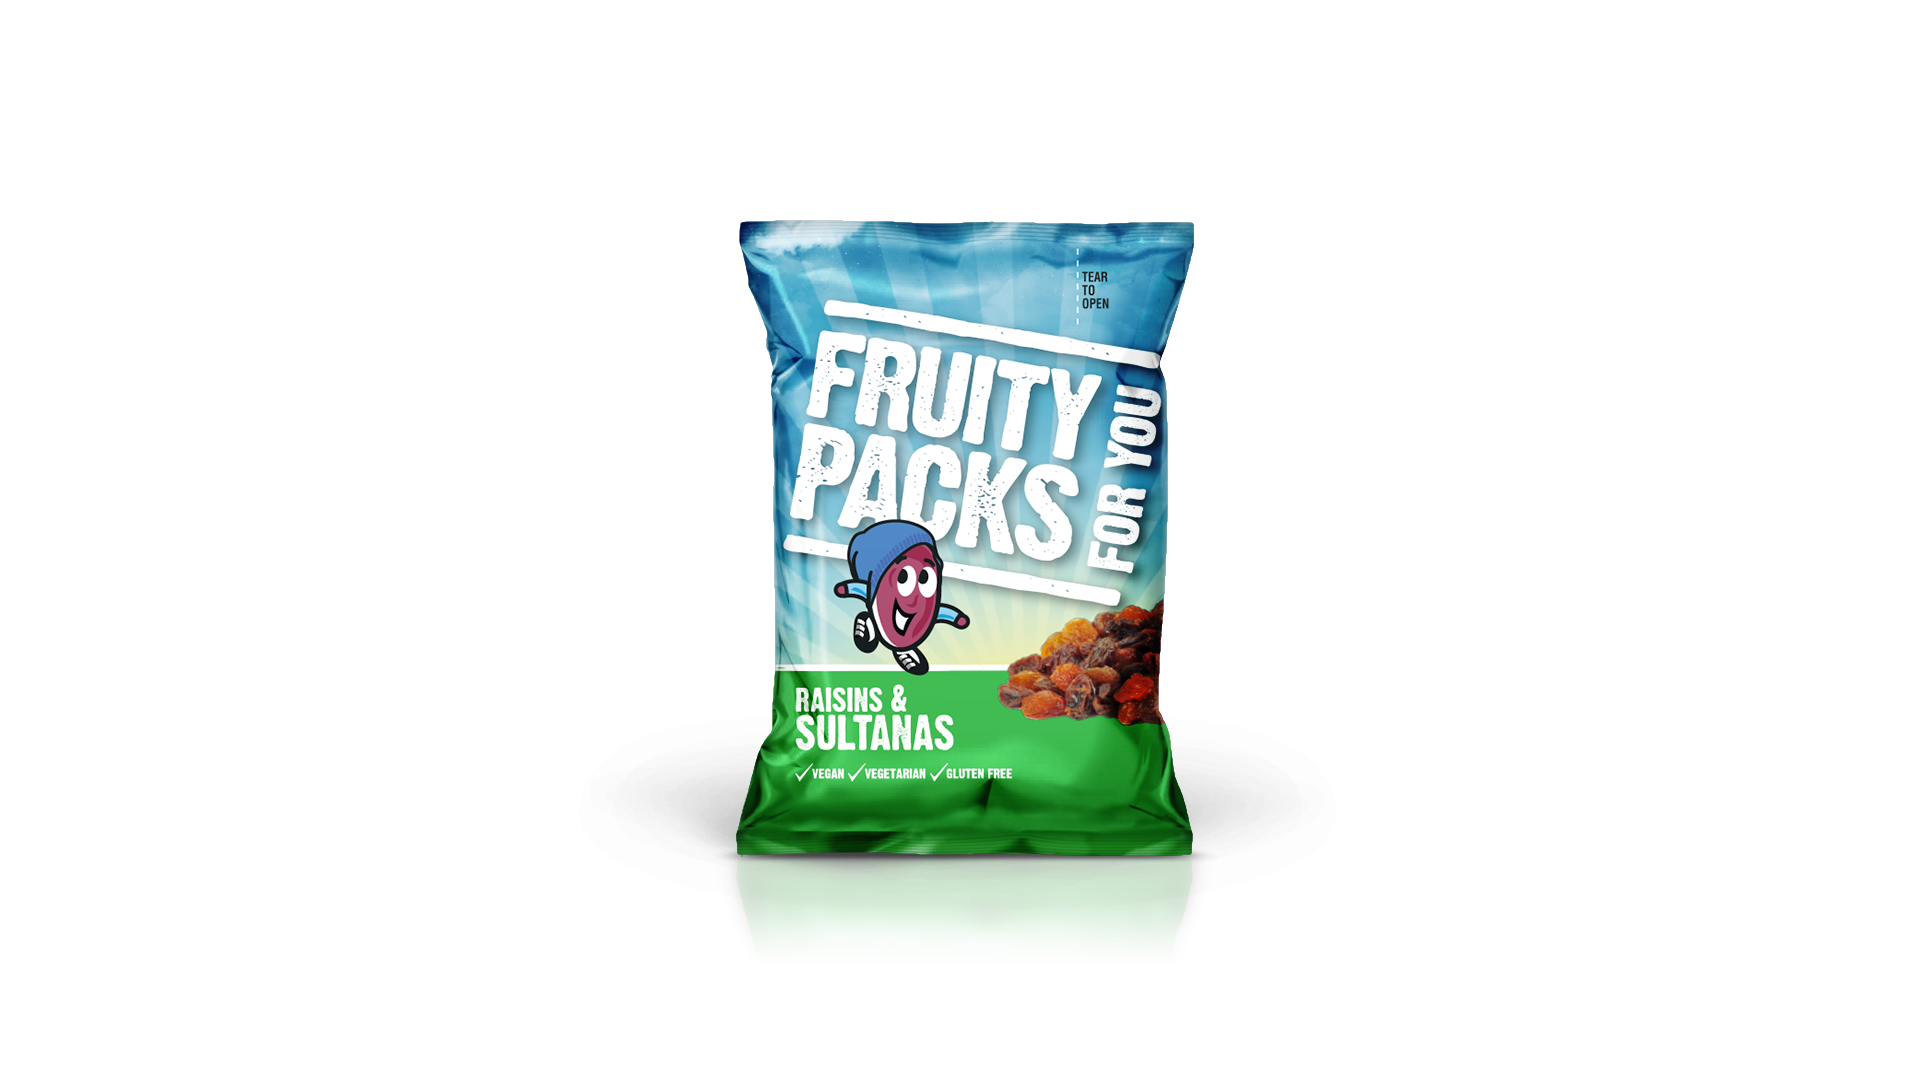 Fruity Packs - Healthy Snacks Raisins & Sultanas